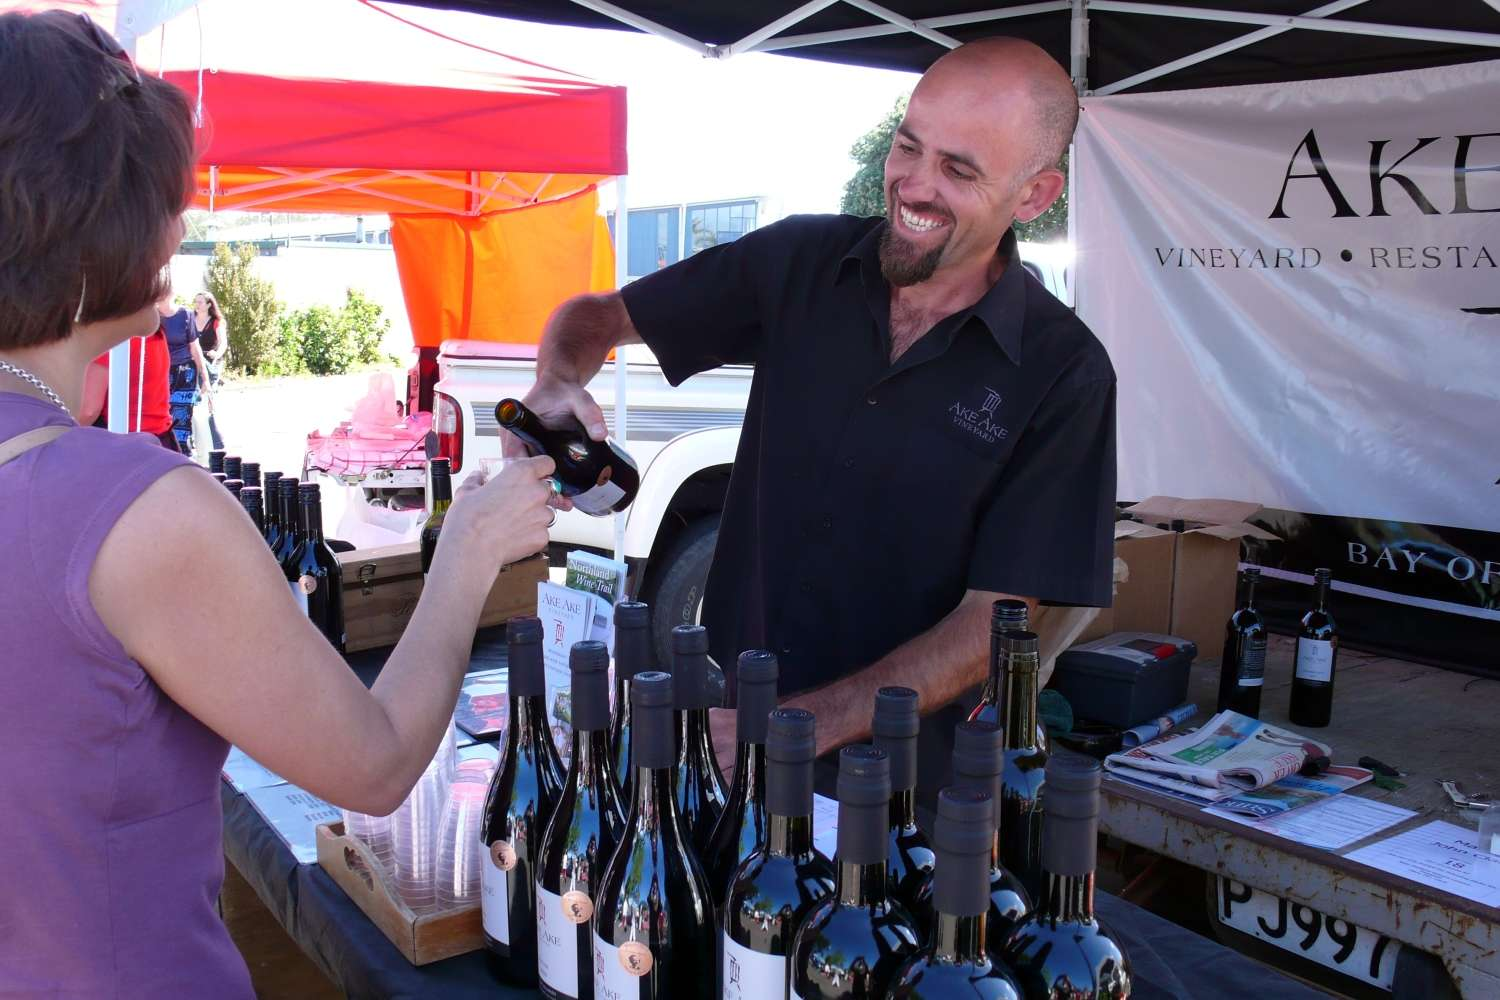 wine-tasting-bay-of-island-farmers-markets.JPG